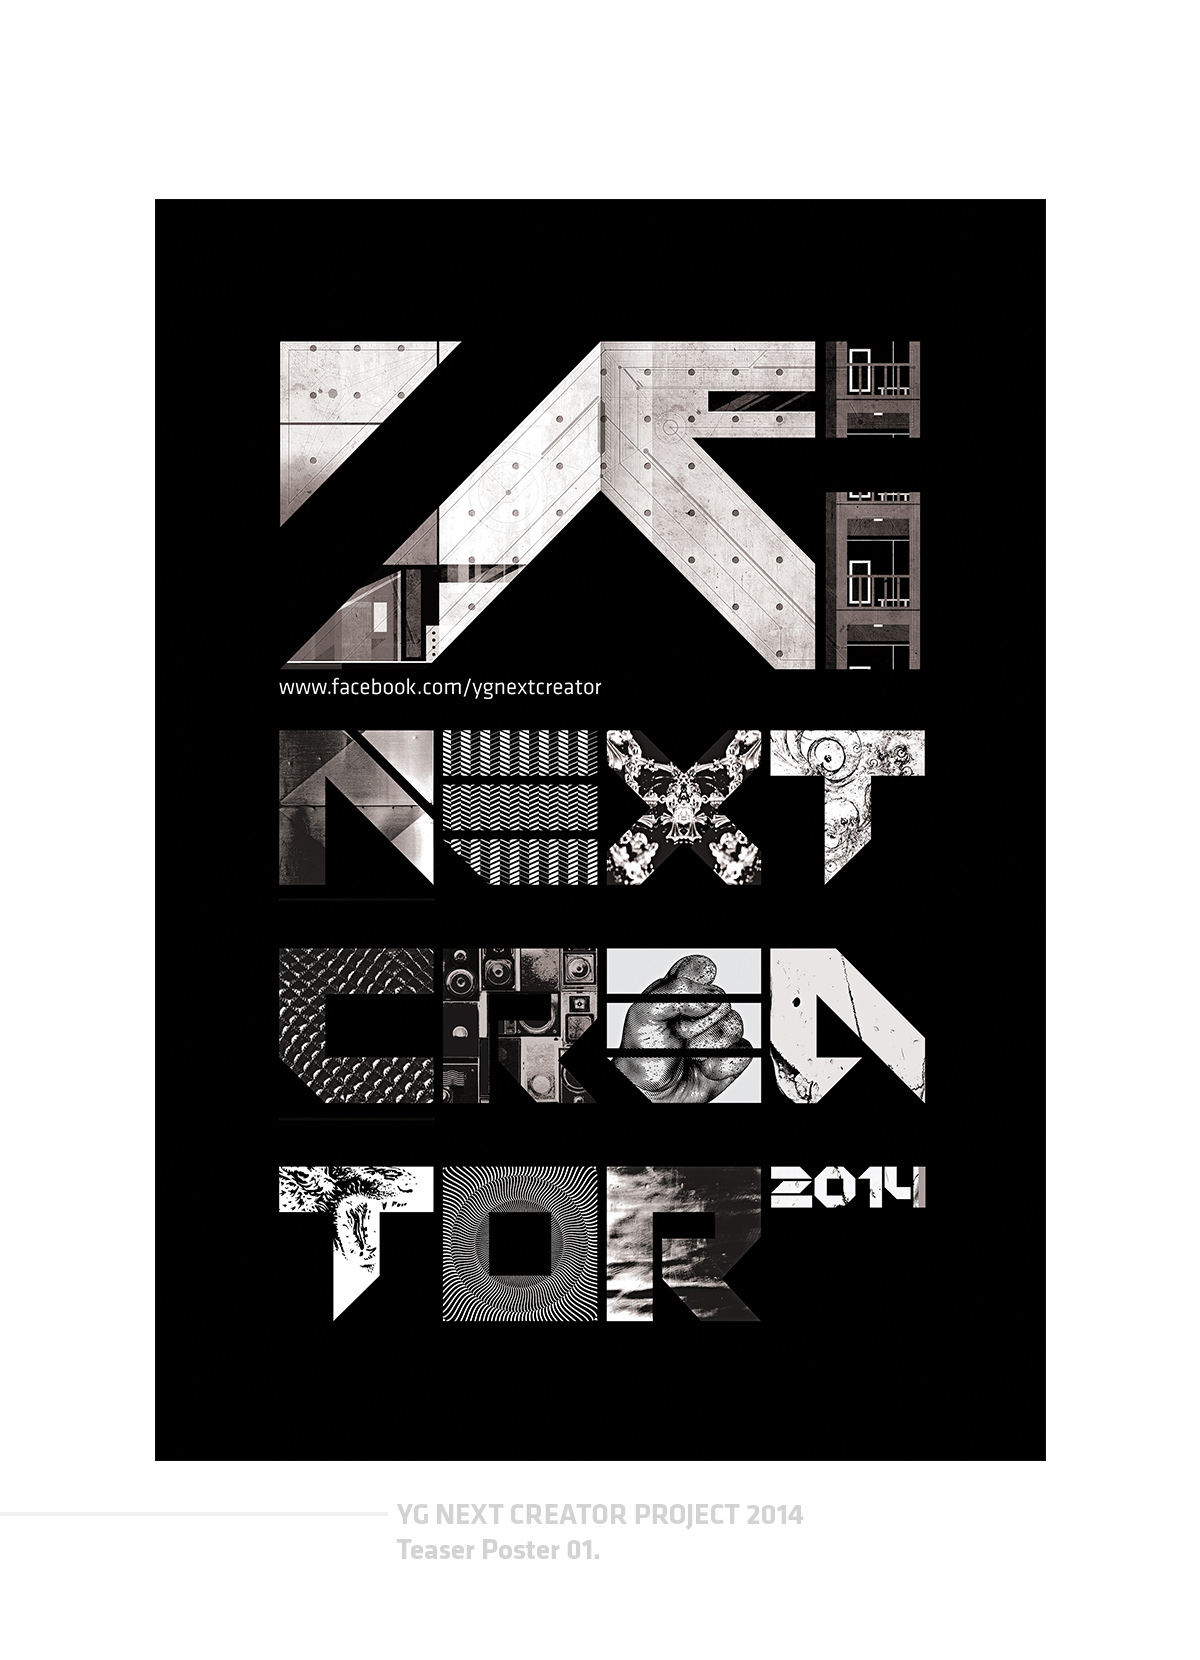 Poster design creator - 2014 Yg Entertainment All Rights Reserved Brand Strategy Design And Poster Image By Yg Entertainment